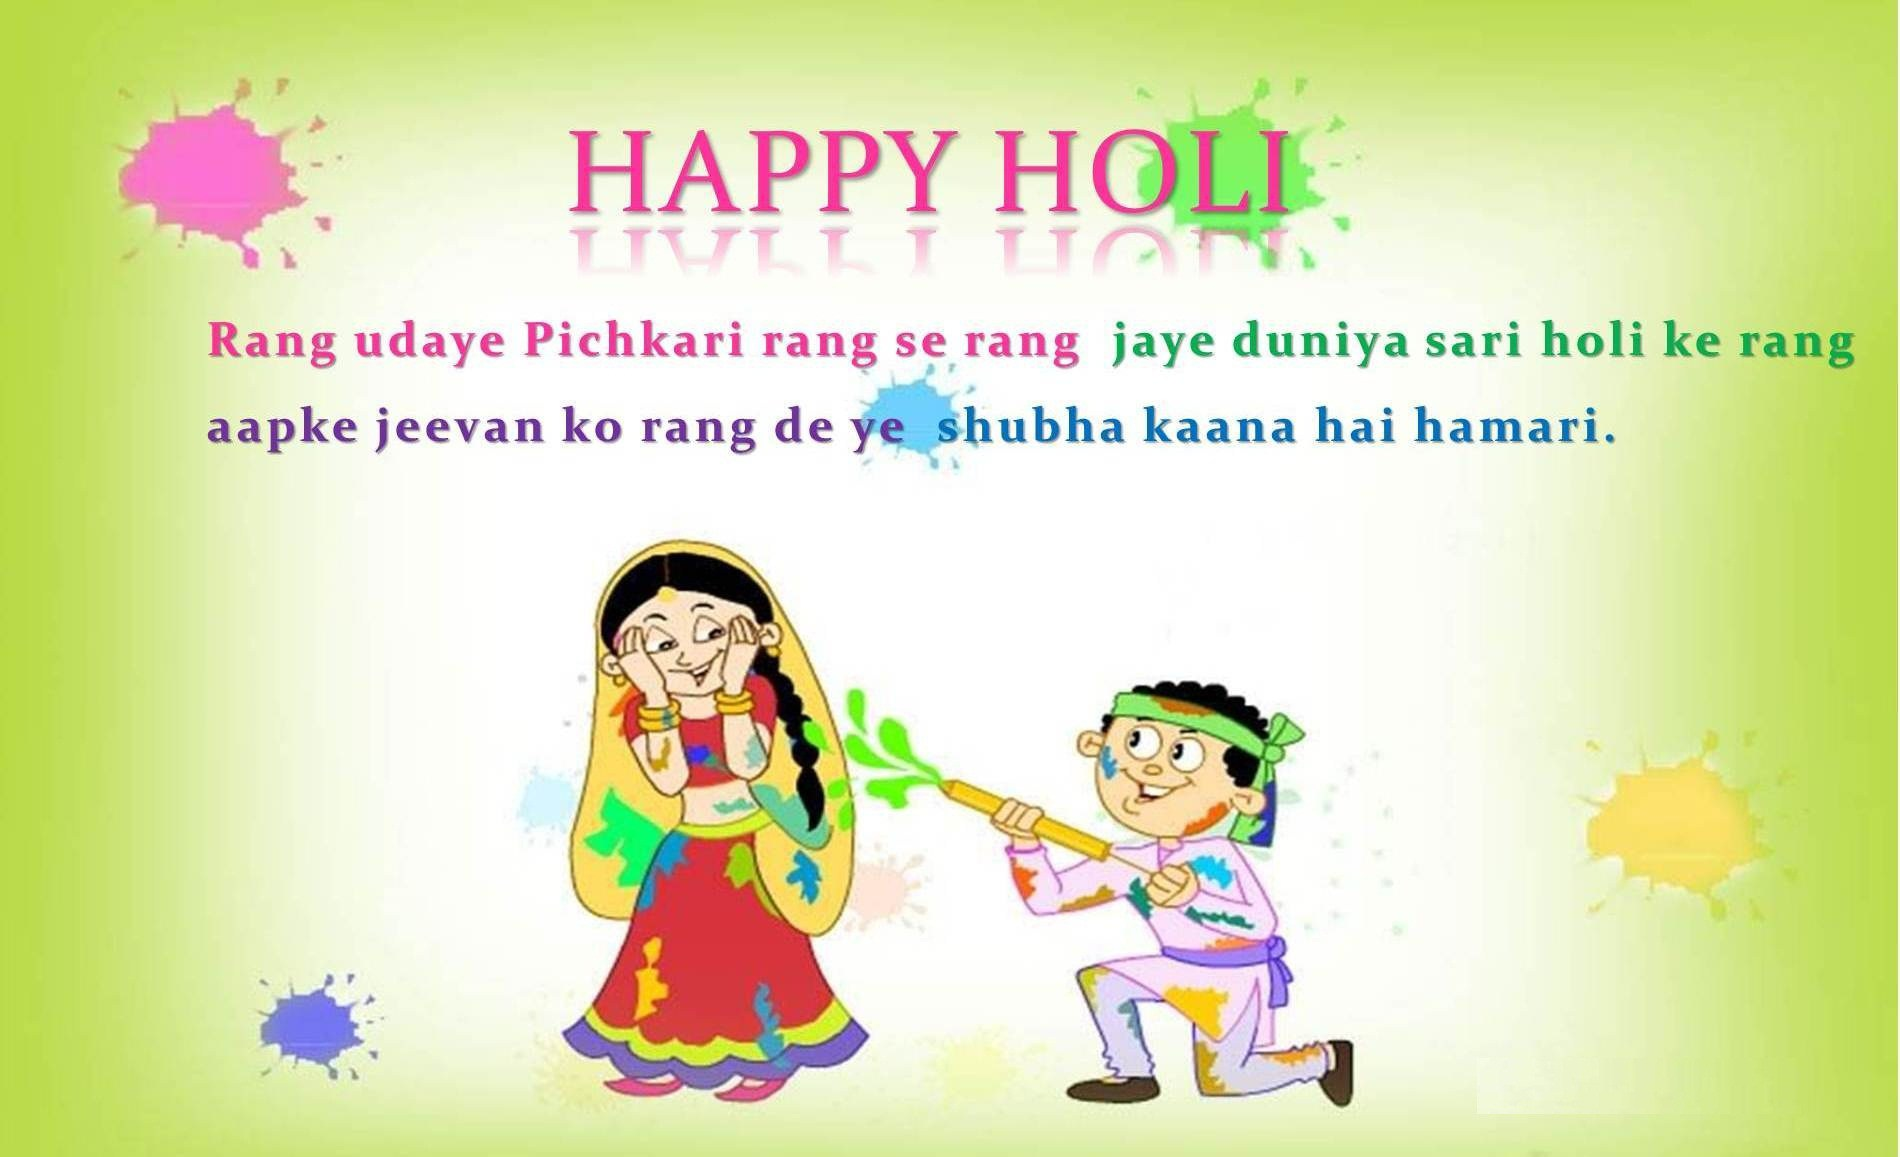 latest-happy-holi-2015-activities-ideas-for-kids-adults/